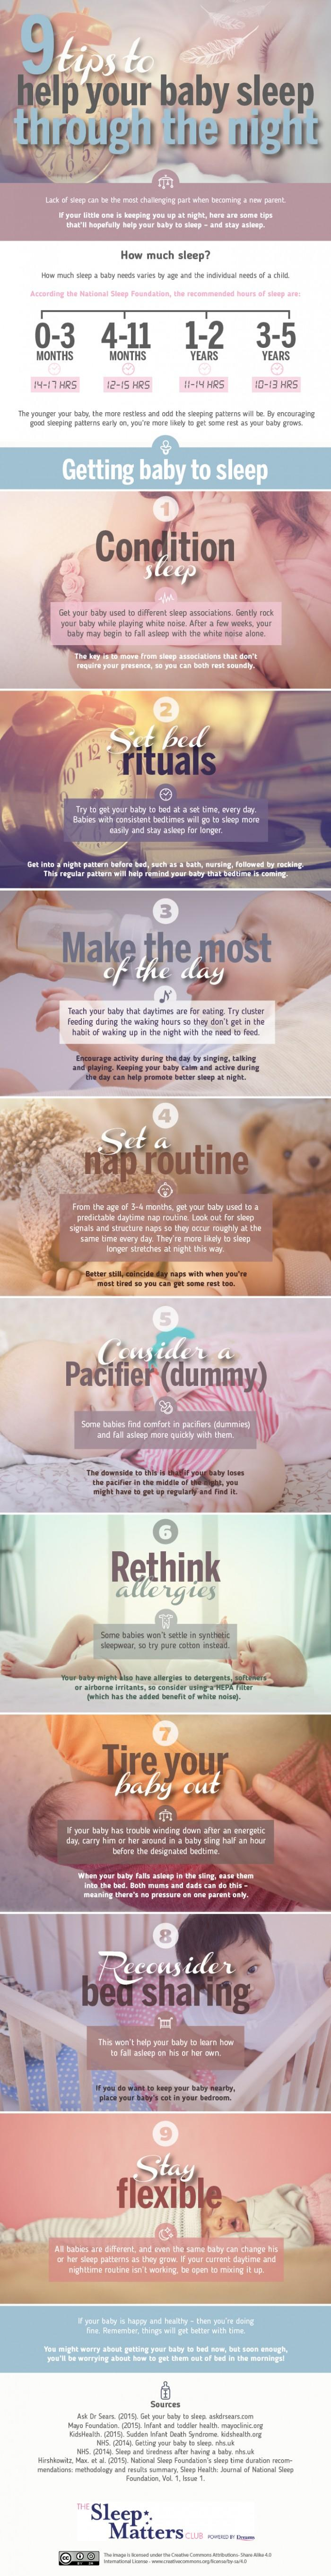 9-tips-to-help-your-baby-sleep-through-the-night